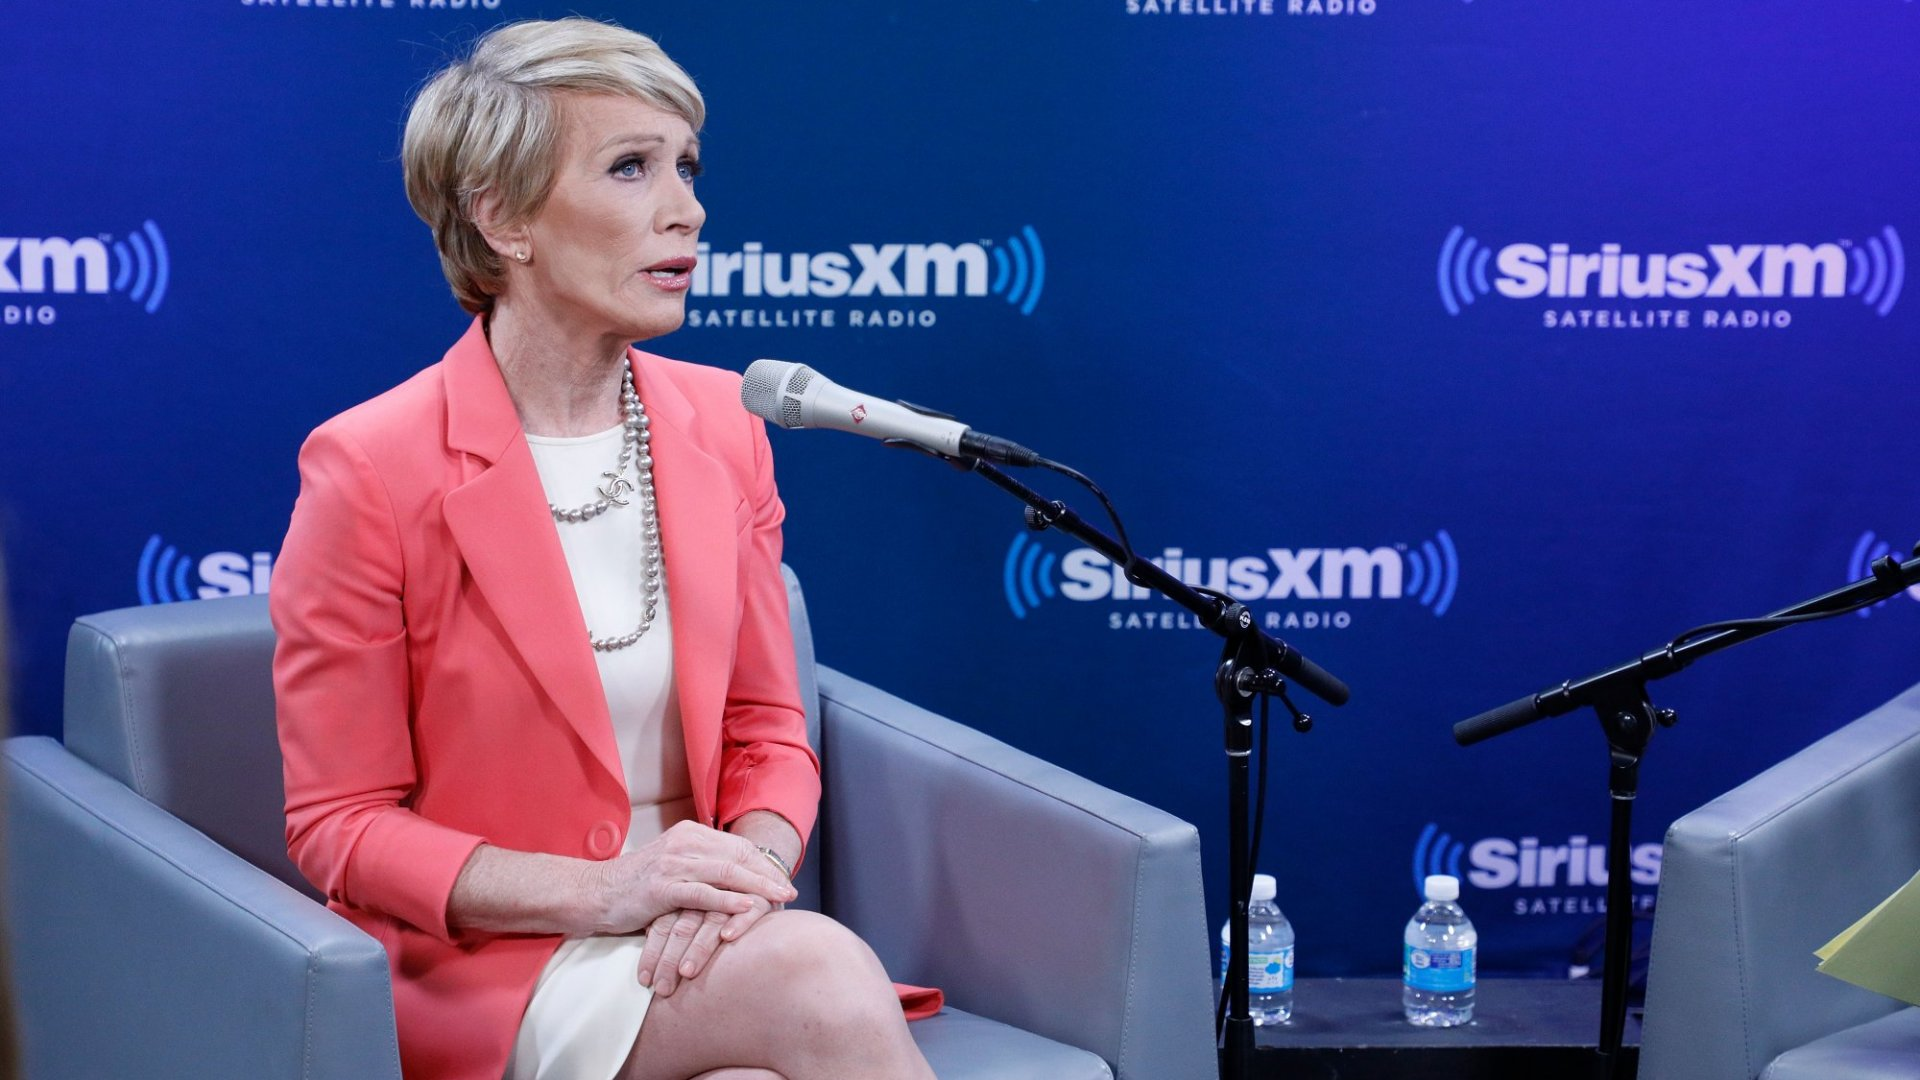 Barbara Corcoran: Avoid Asking 3 Questions in a Job Interview at All Costs. It'll Cost You the Job